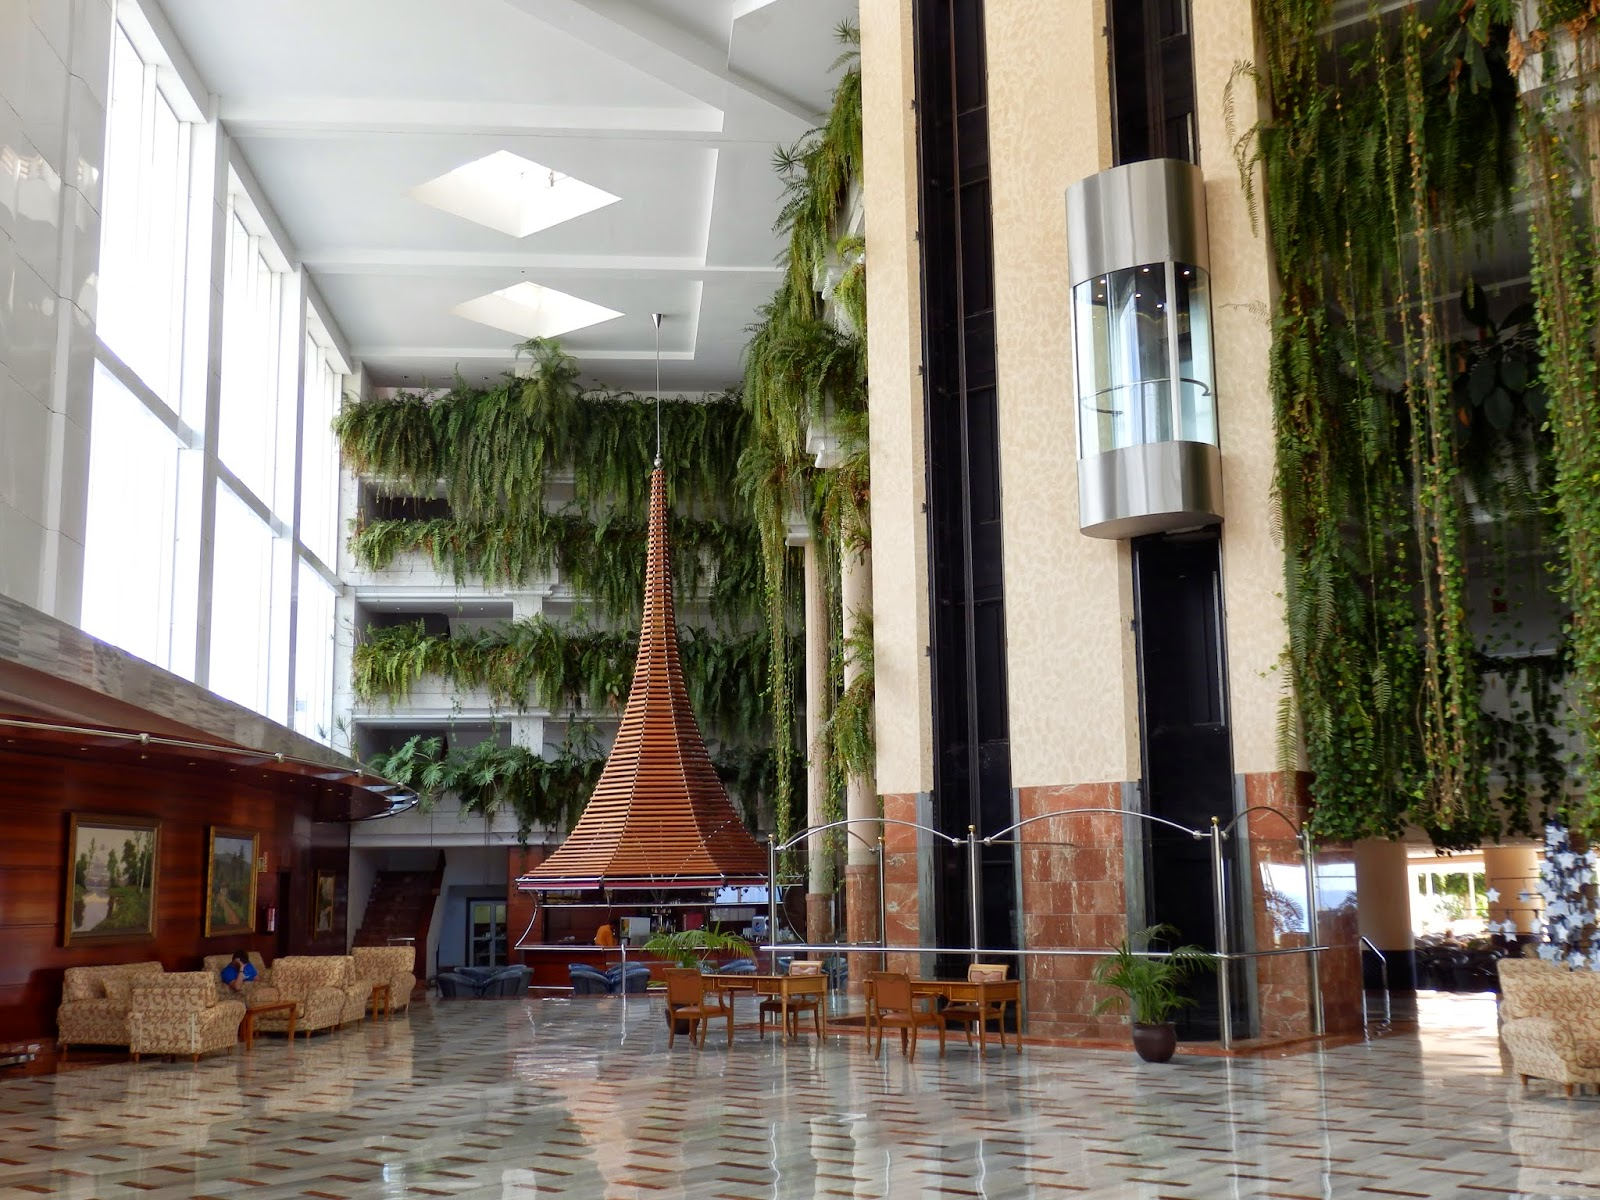 Tenerife hotel reception